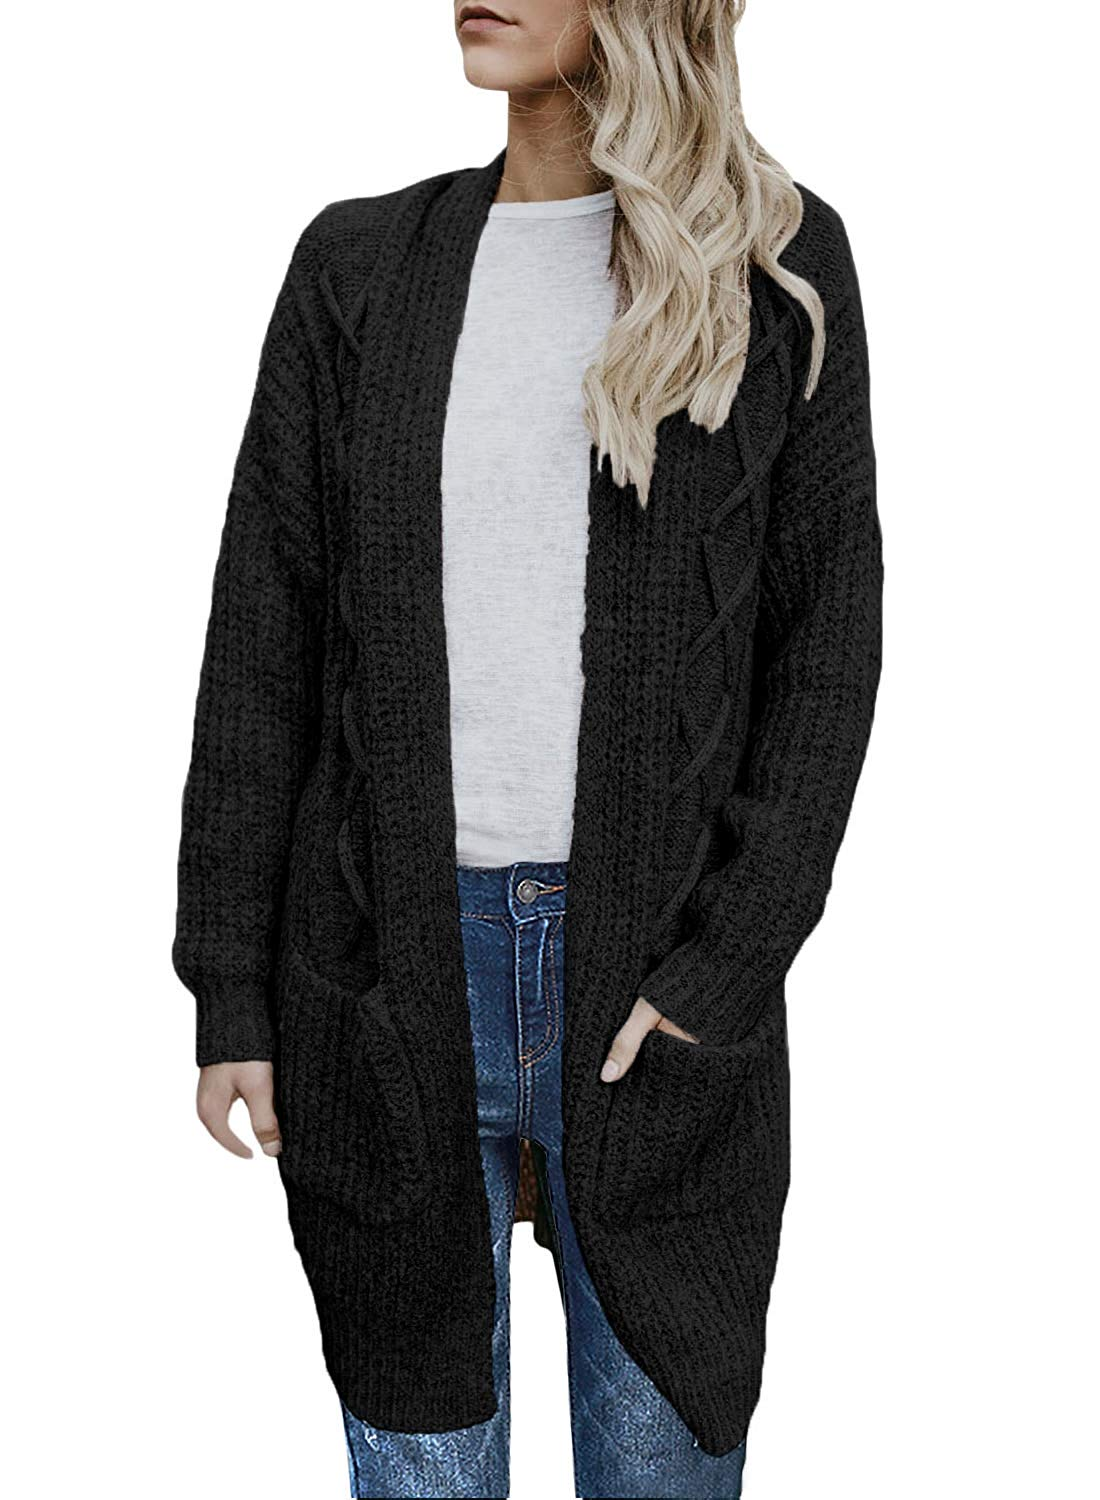 CILKOO Womens Open Front Long Sleeve Chunky Cable Knit Long Cardigans Sweater Pockets(S-XXL)